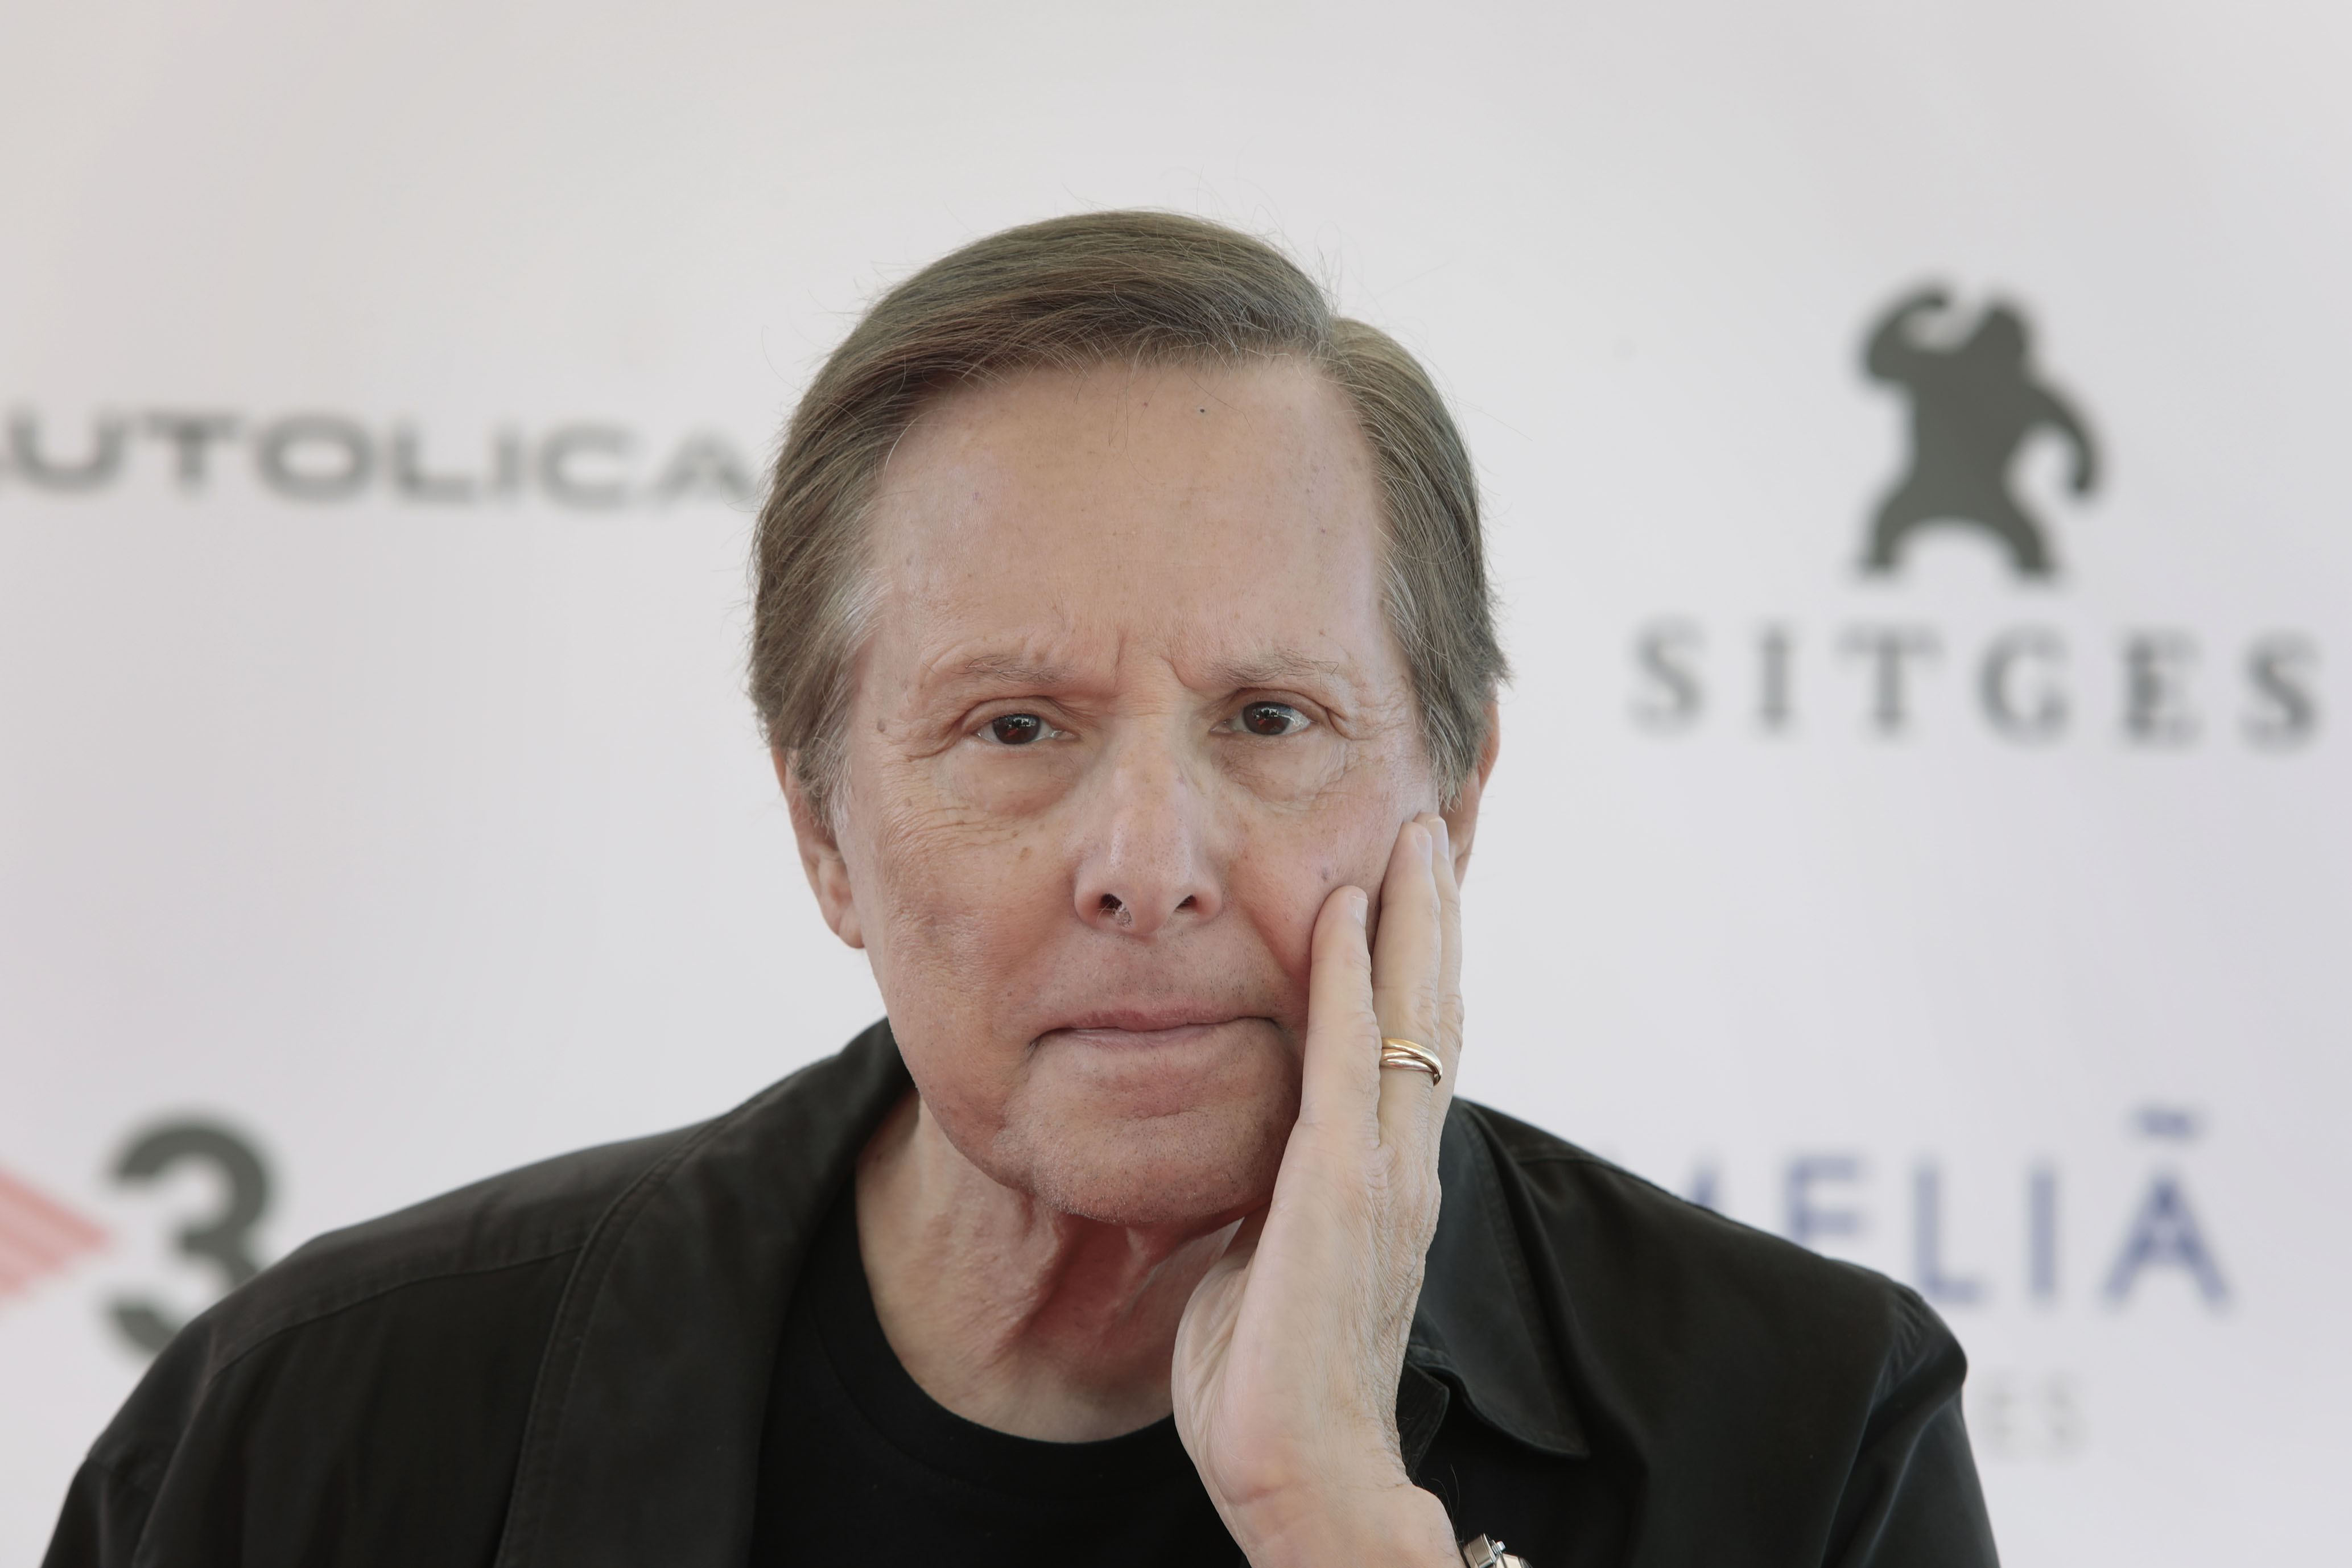 Q&A: William Friedkin On Why He Never Saw the Other 'Exorcist' Movies